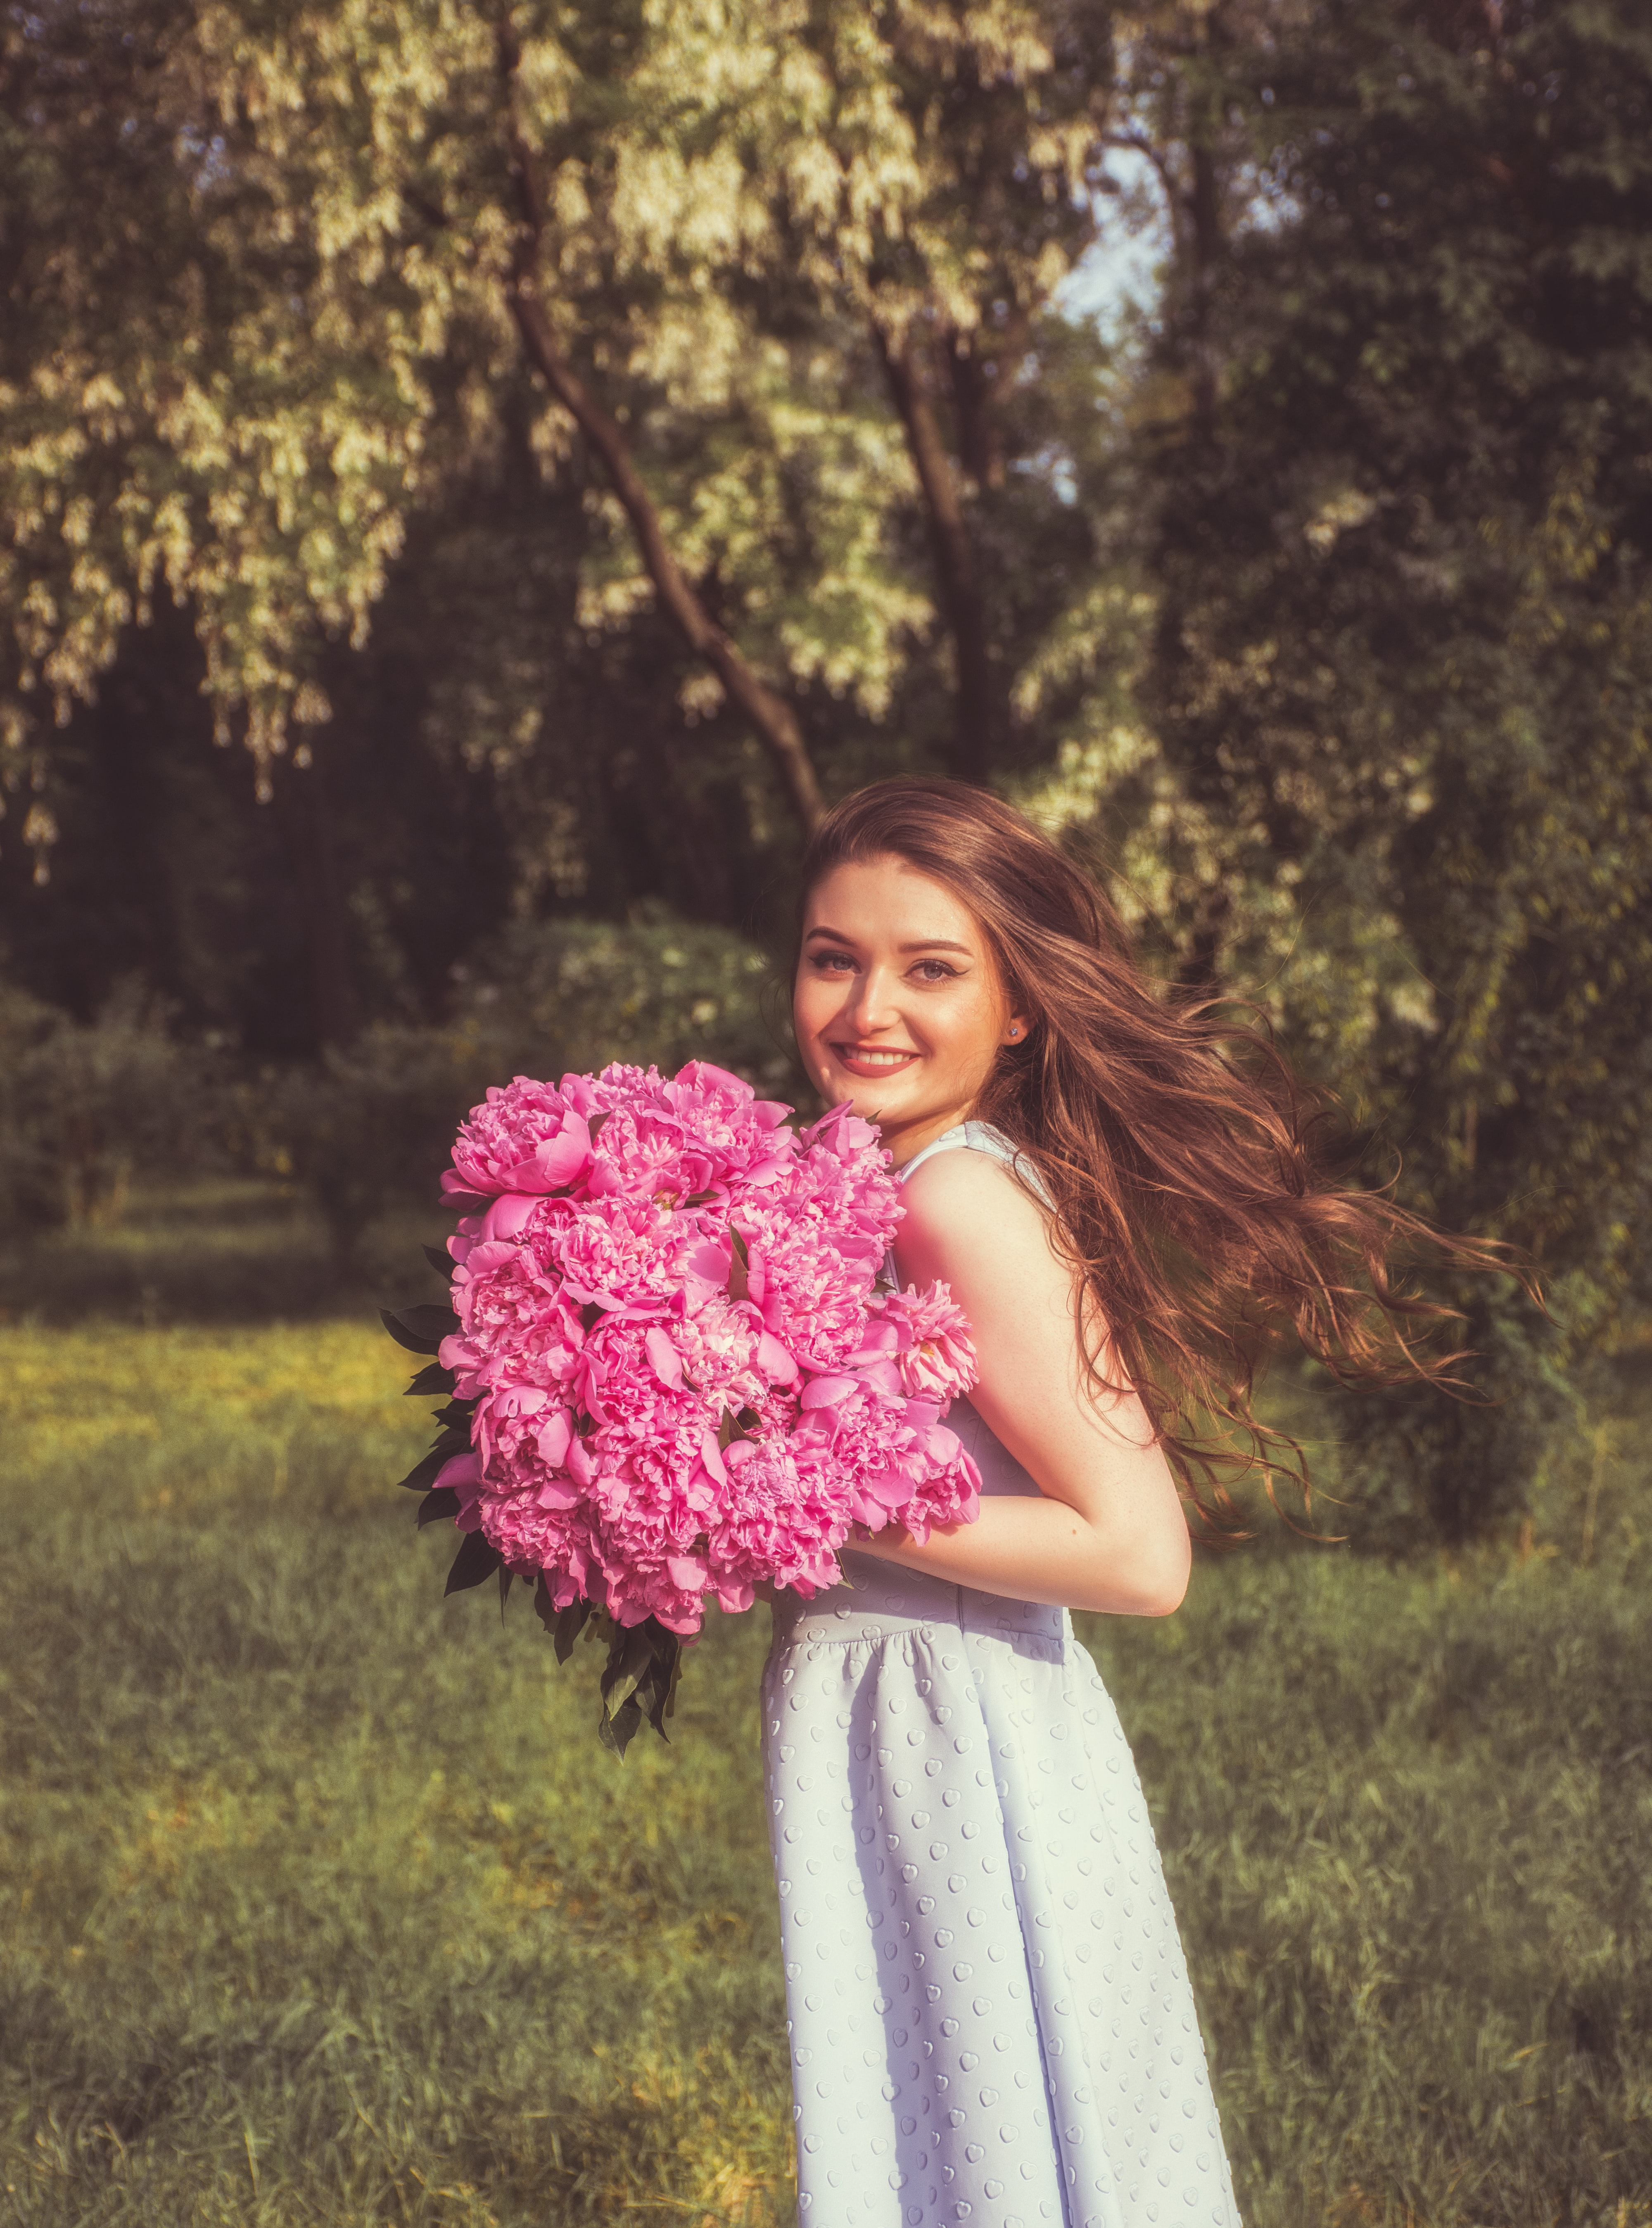 woman holding bouquet of pink flower smiling during daytime